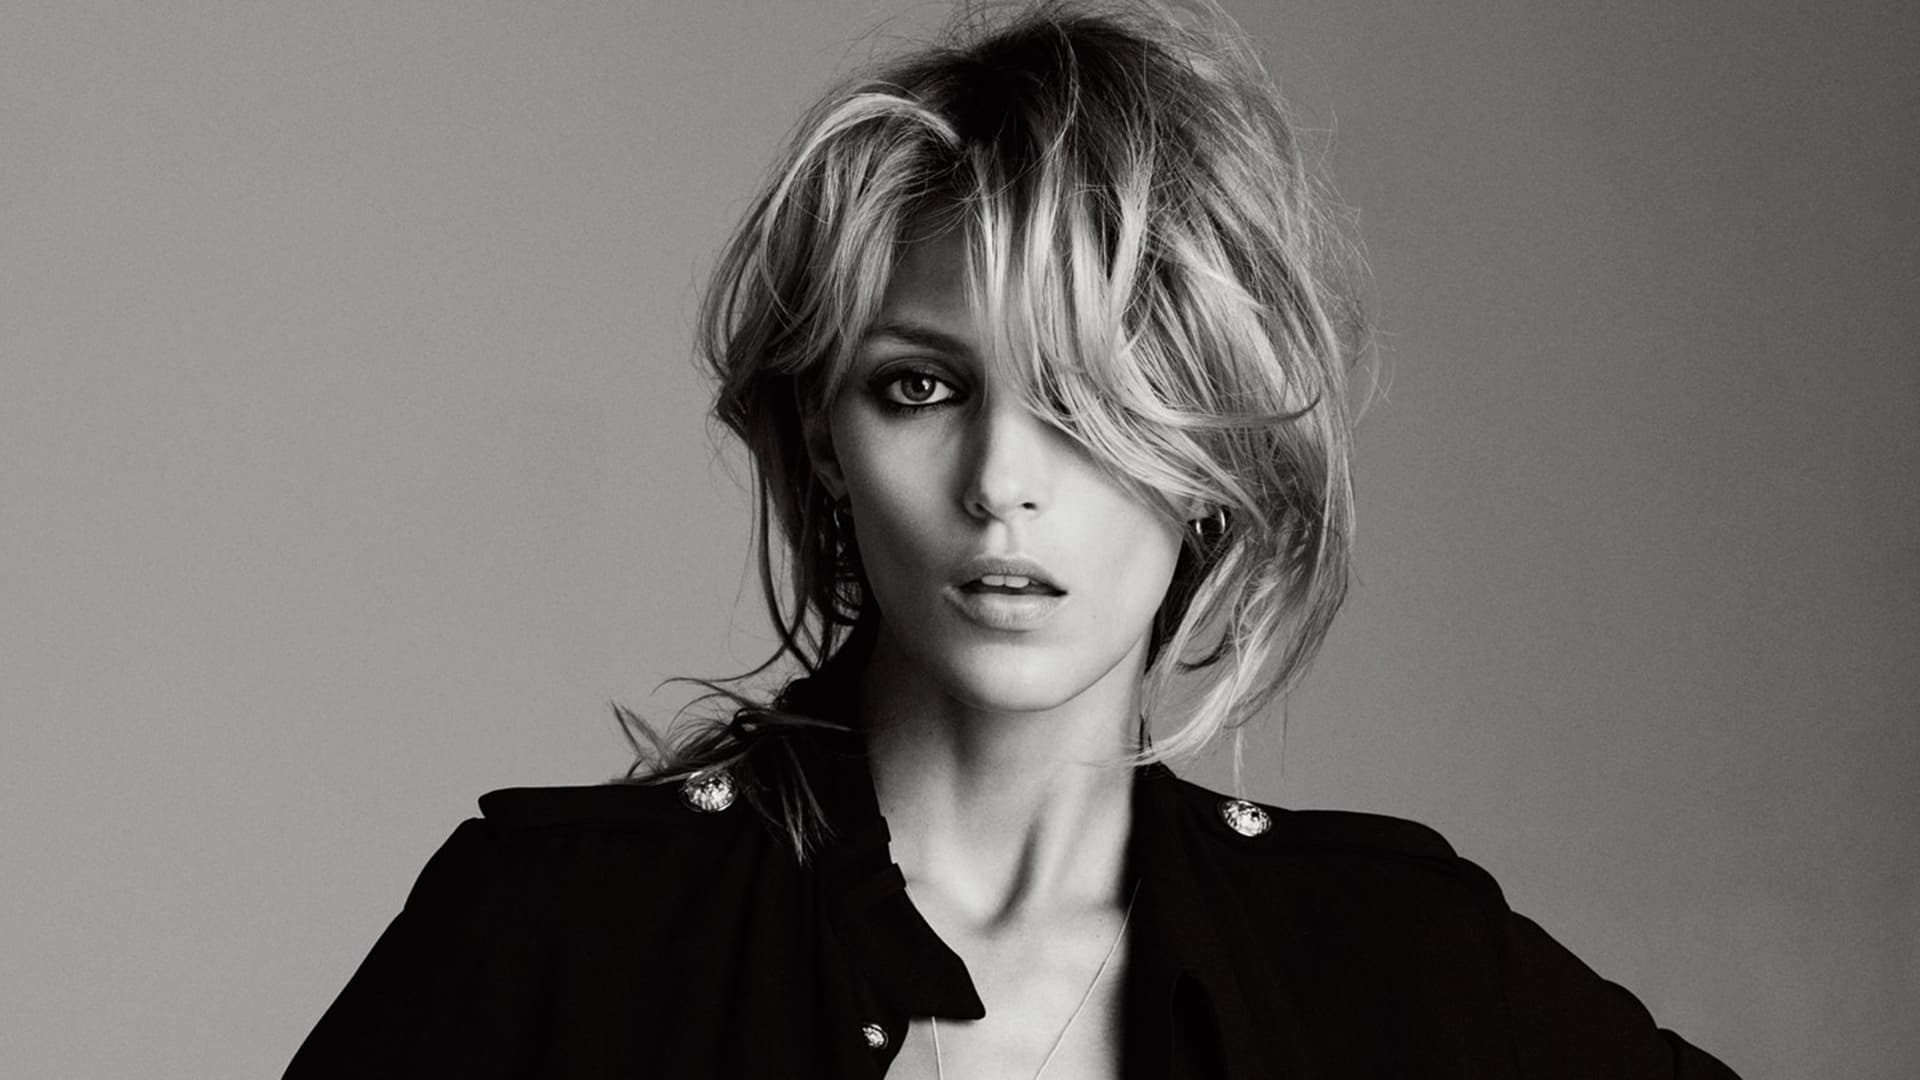 Black And White Hair Styles: Anja Rubik Wallpapers HD High Quality Resolution Download